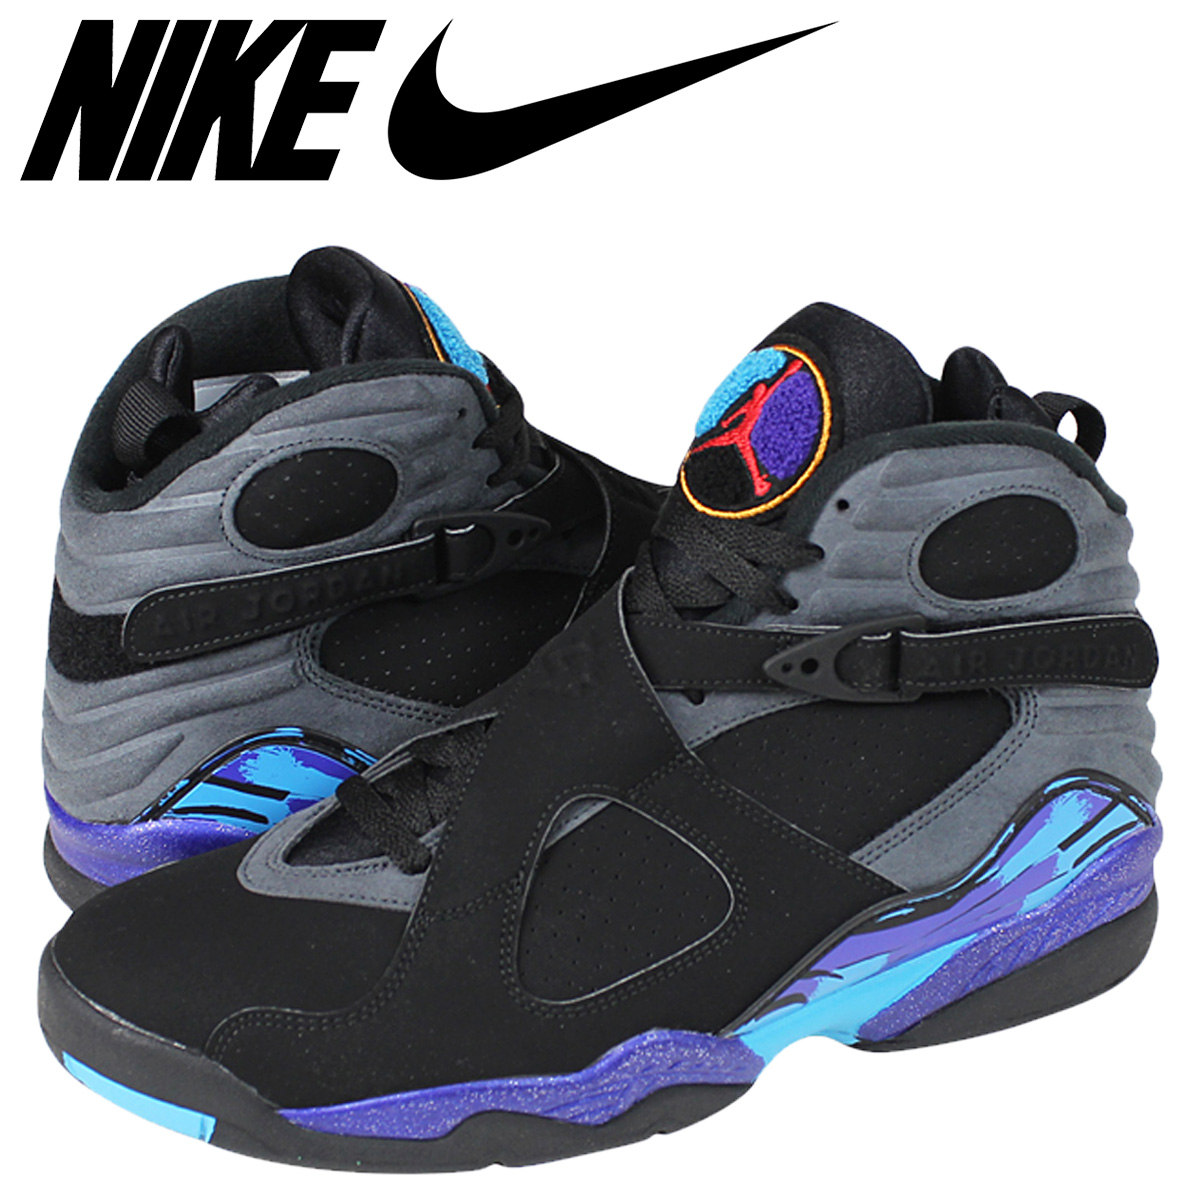 premium selection f37cc 77a3a ... cheapest nike nike air jordan sneakers air jordan 8 retro aqua air  jordan retro 8 aqua